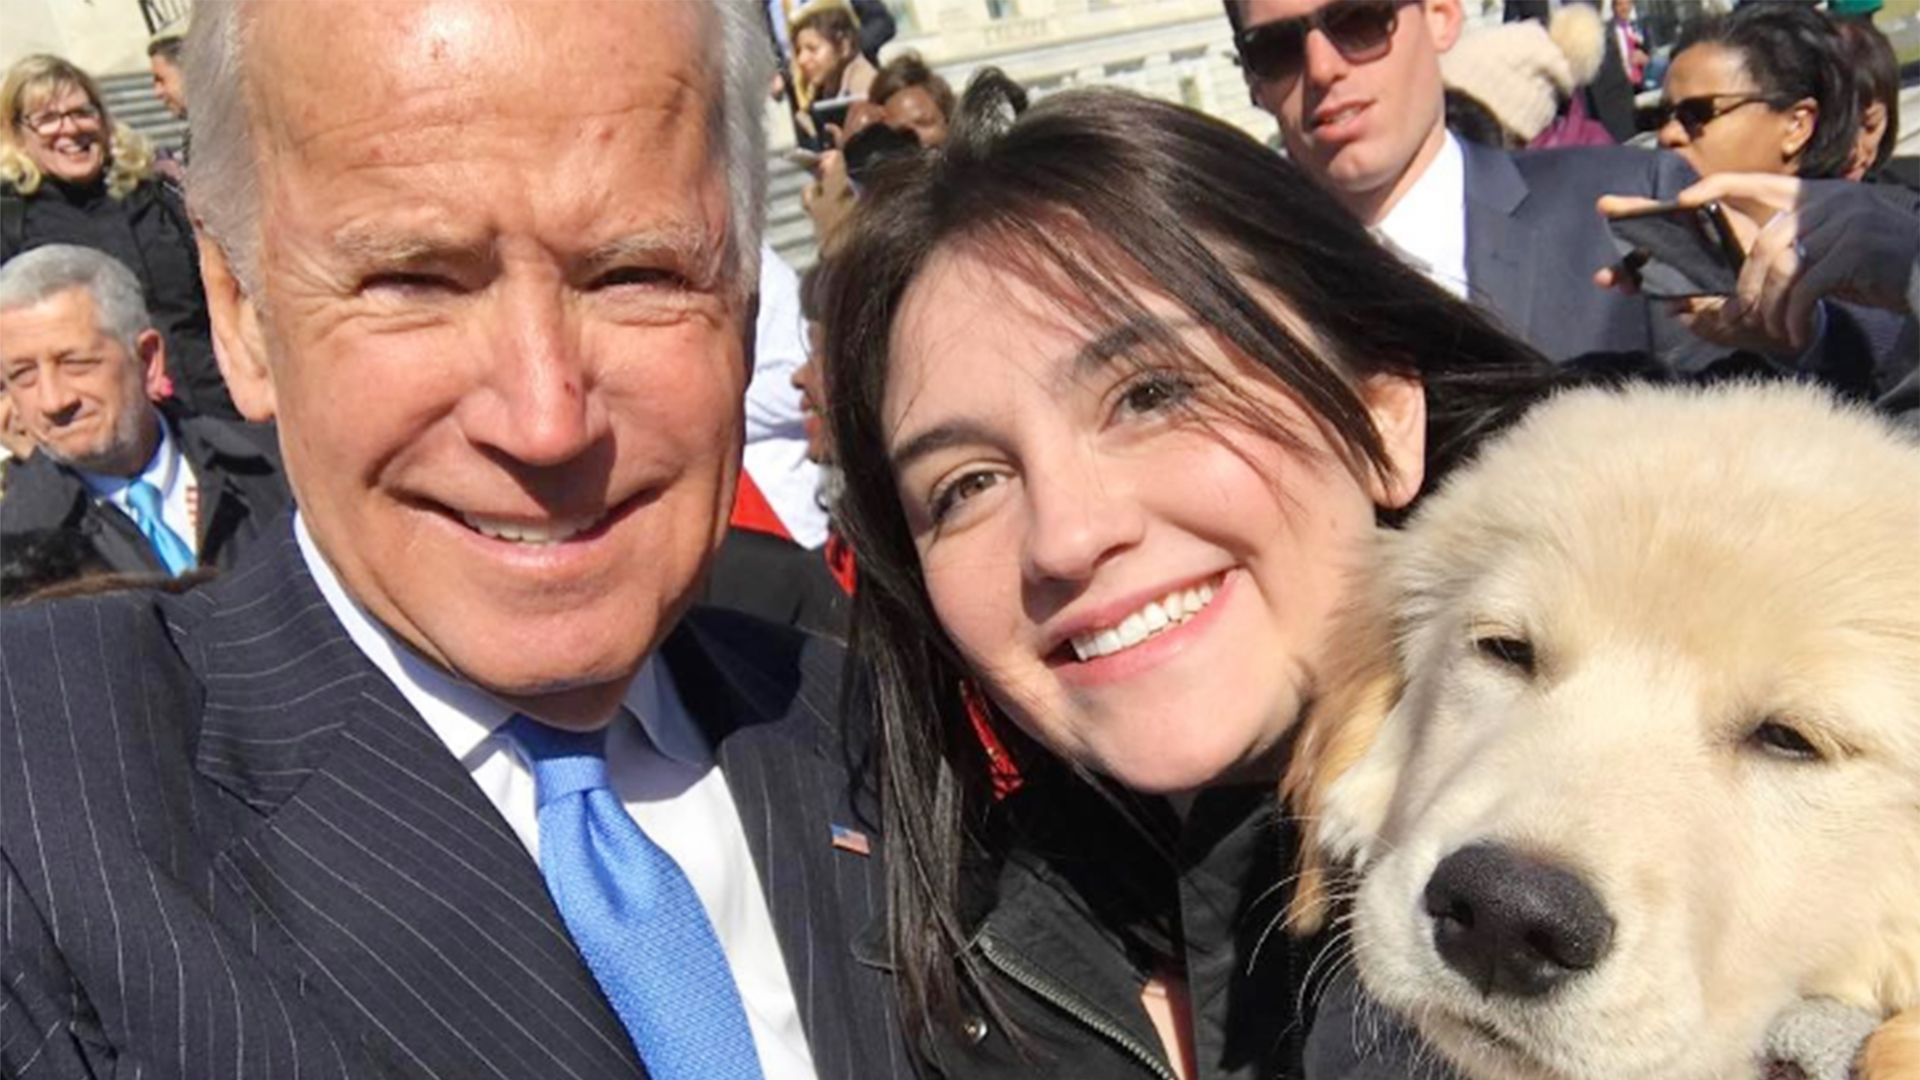 Sweet pawlitics! Joe Biden the human meets Joe Biden the puppy